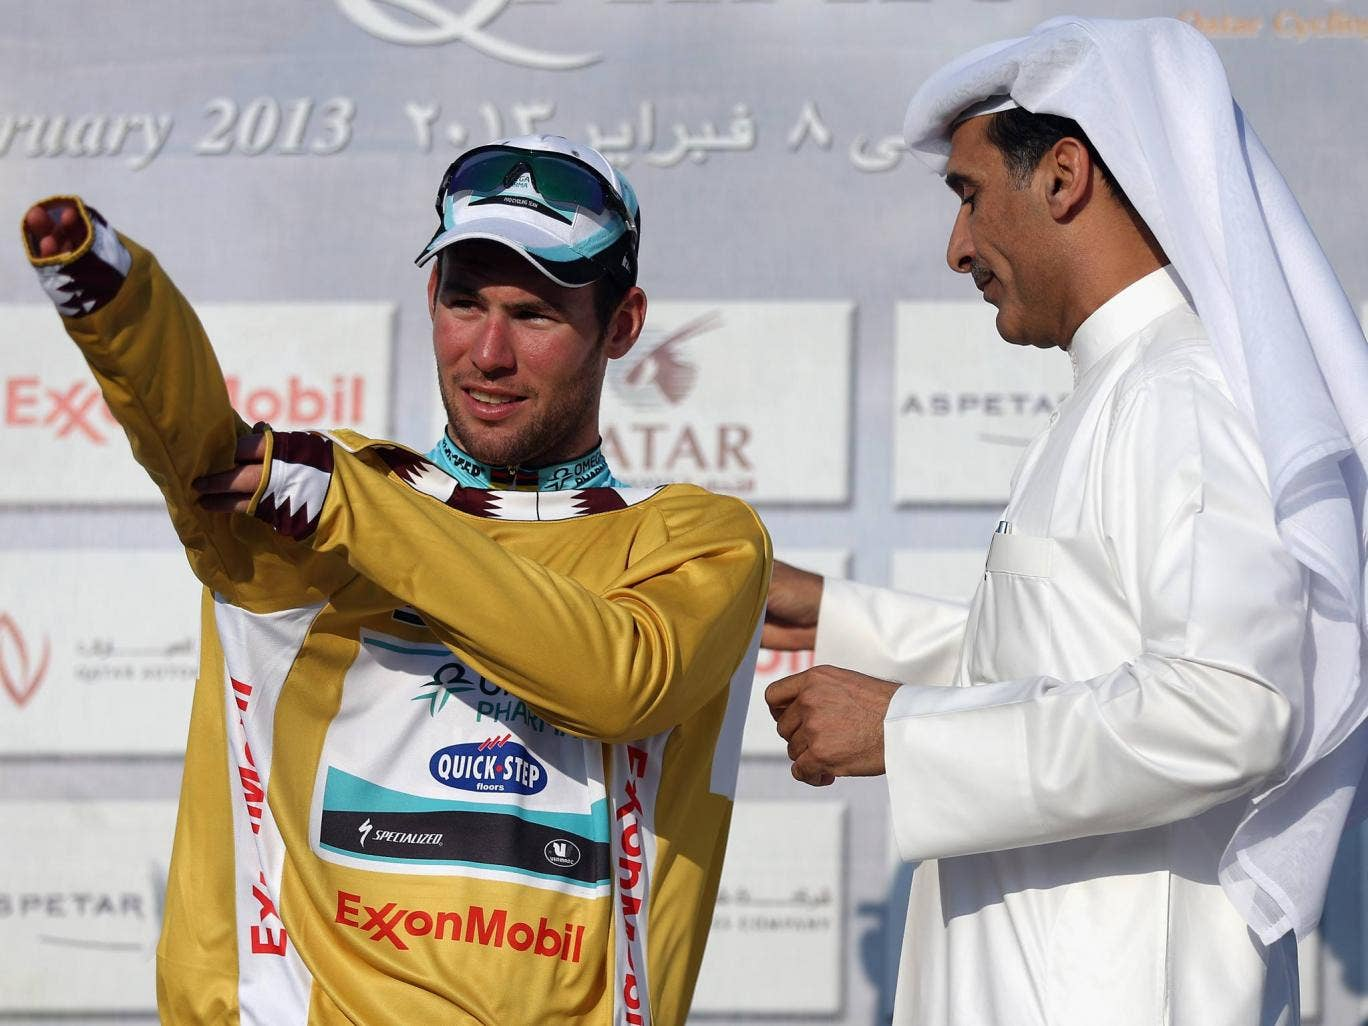 Mark Cavendish tries the Tour of Qatar golden jersey on for size